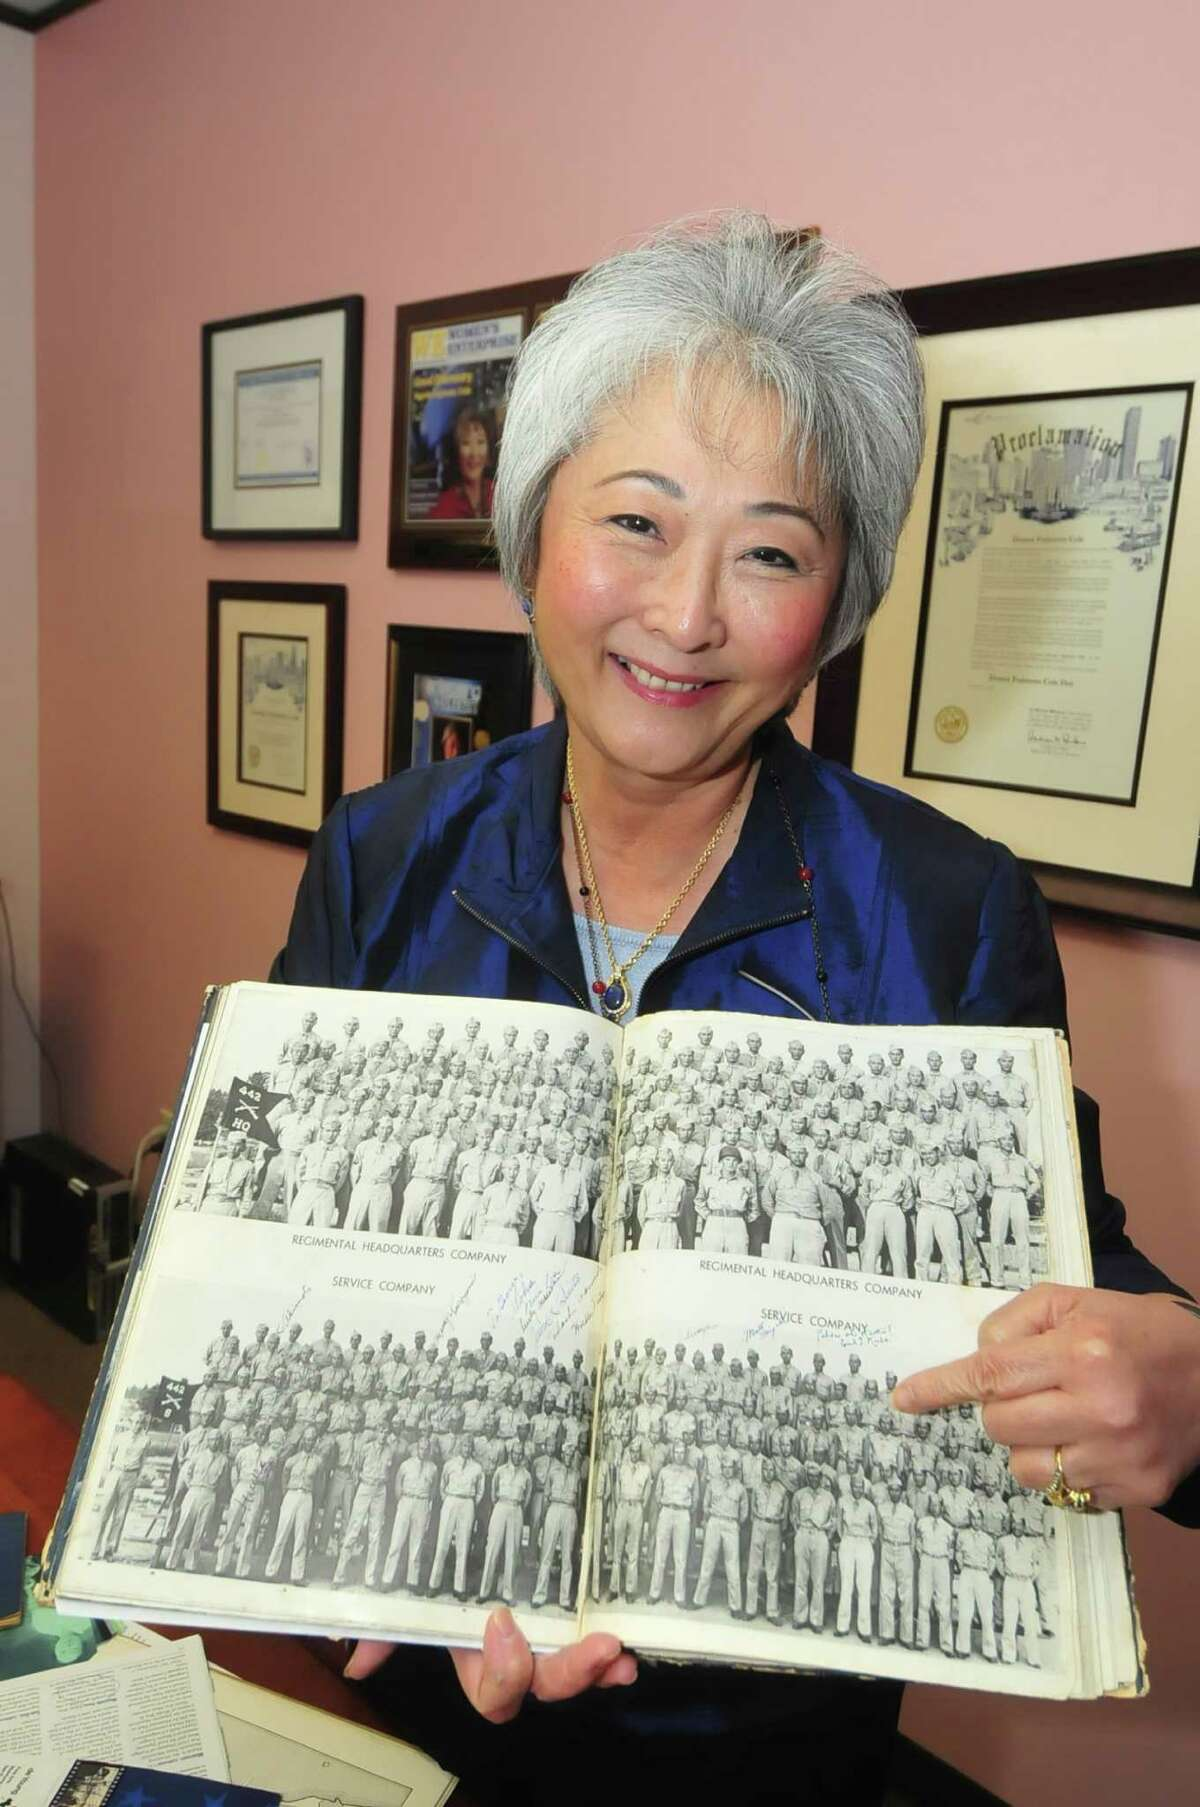 Donna Cole shows where her father is in a 1943 photo of the Army 442nd Combat Team, which has been honored for its role in World War II.